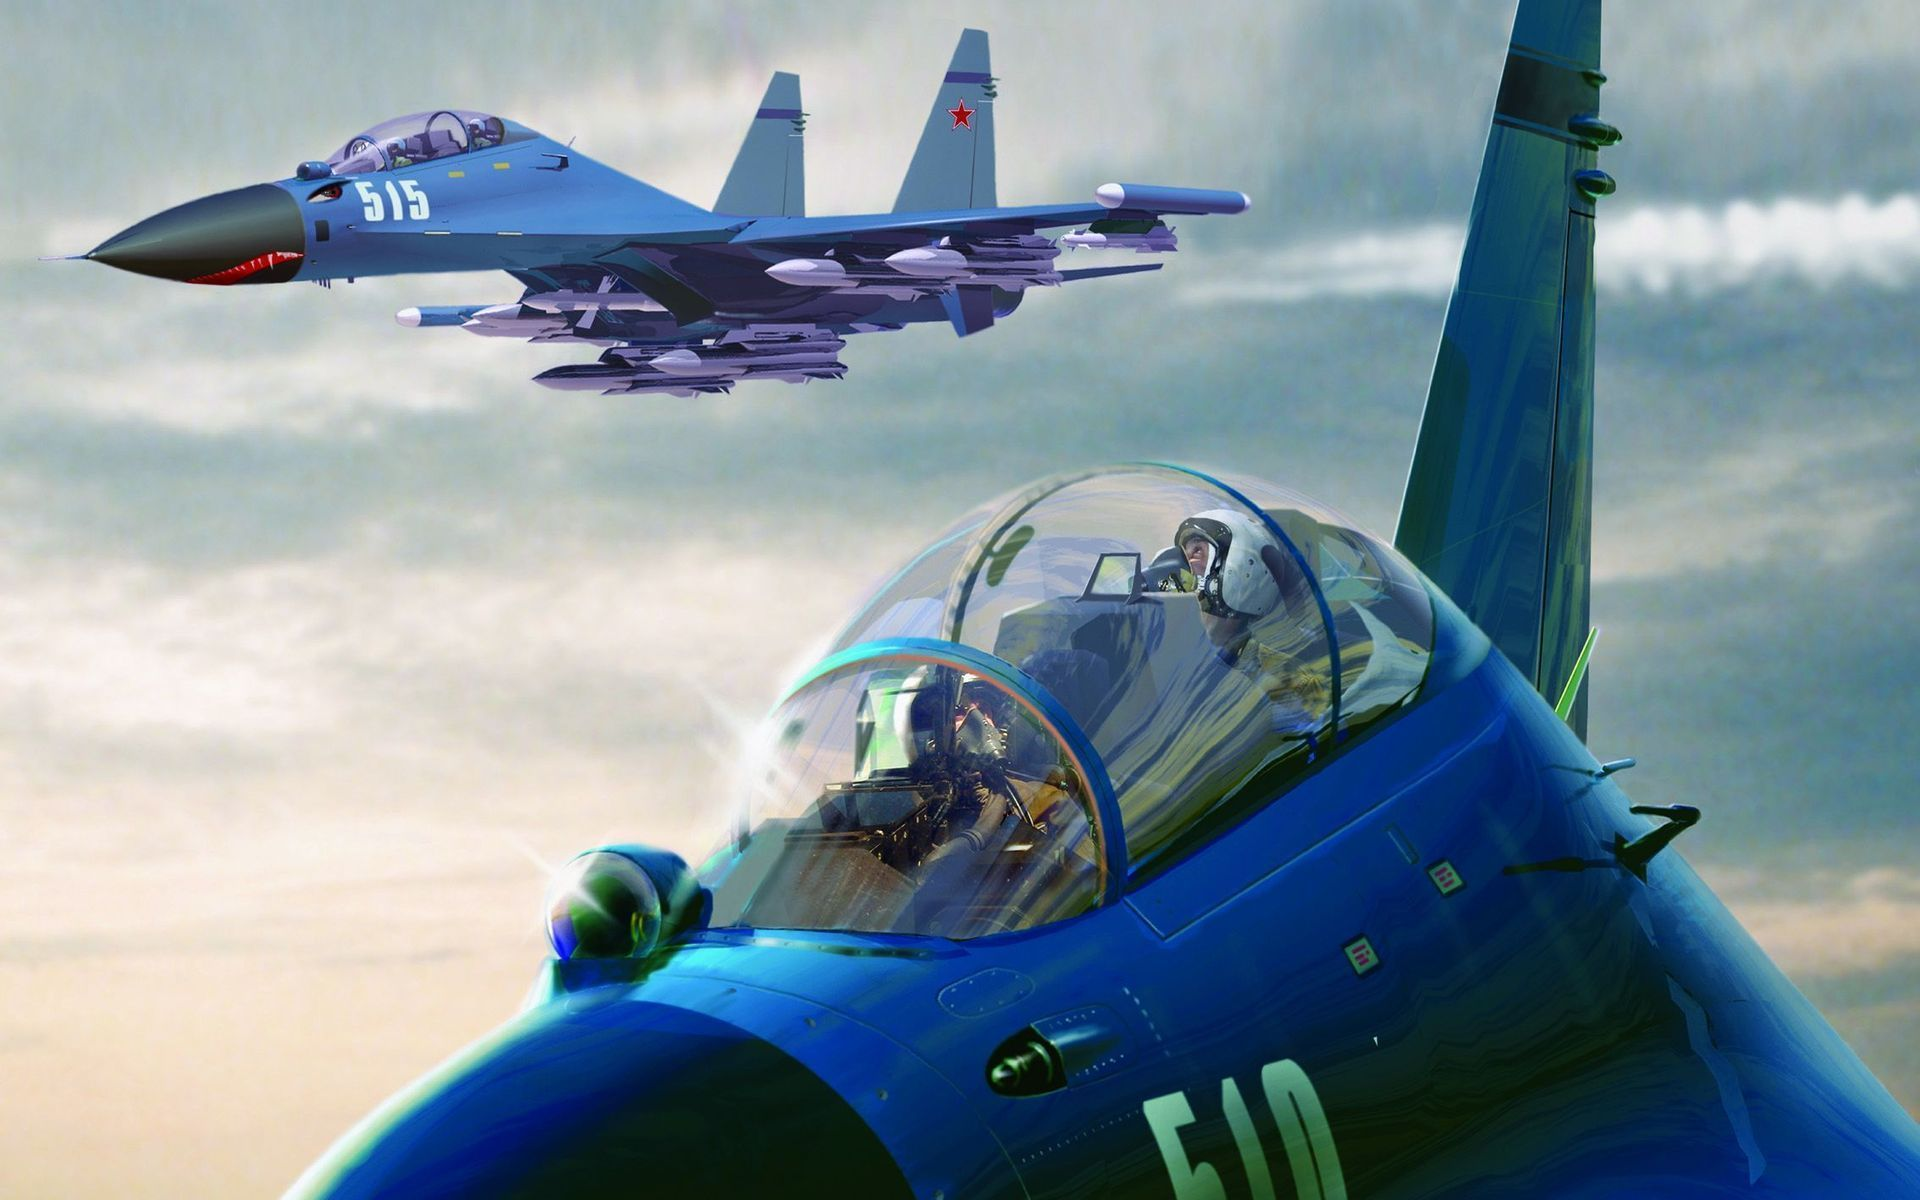 Mikoyan MiG-35 Full HD Wallpaper And Background Image